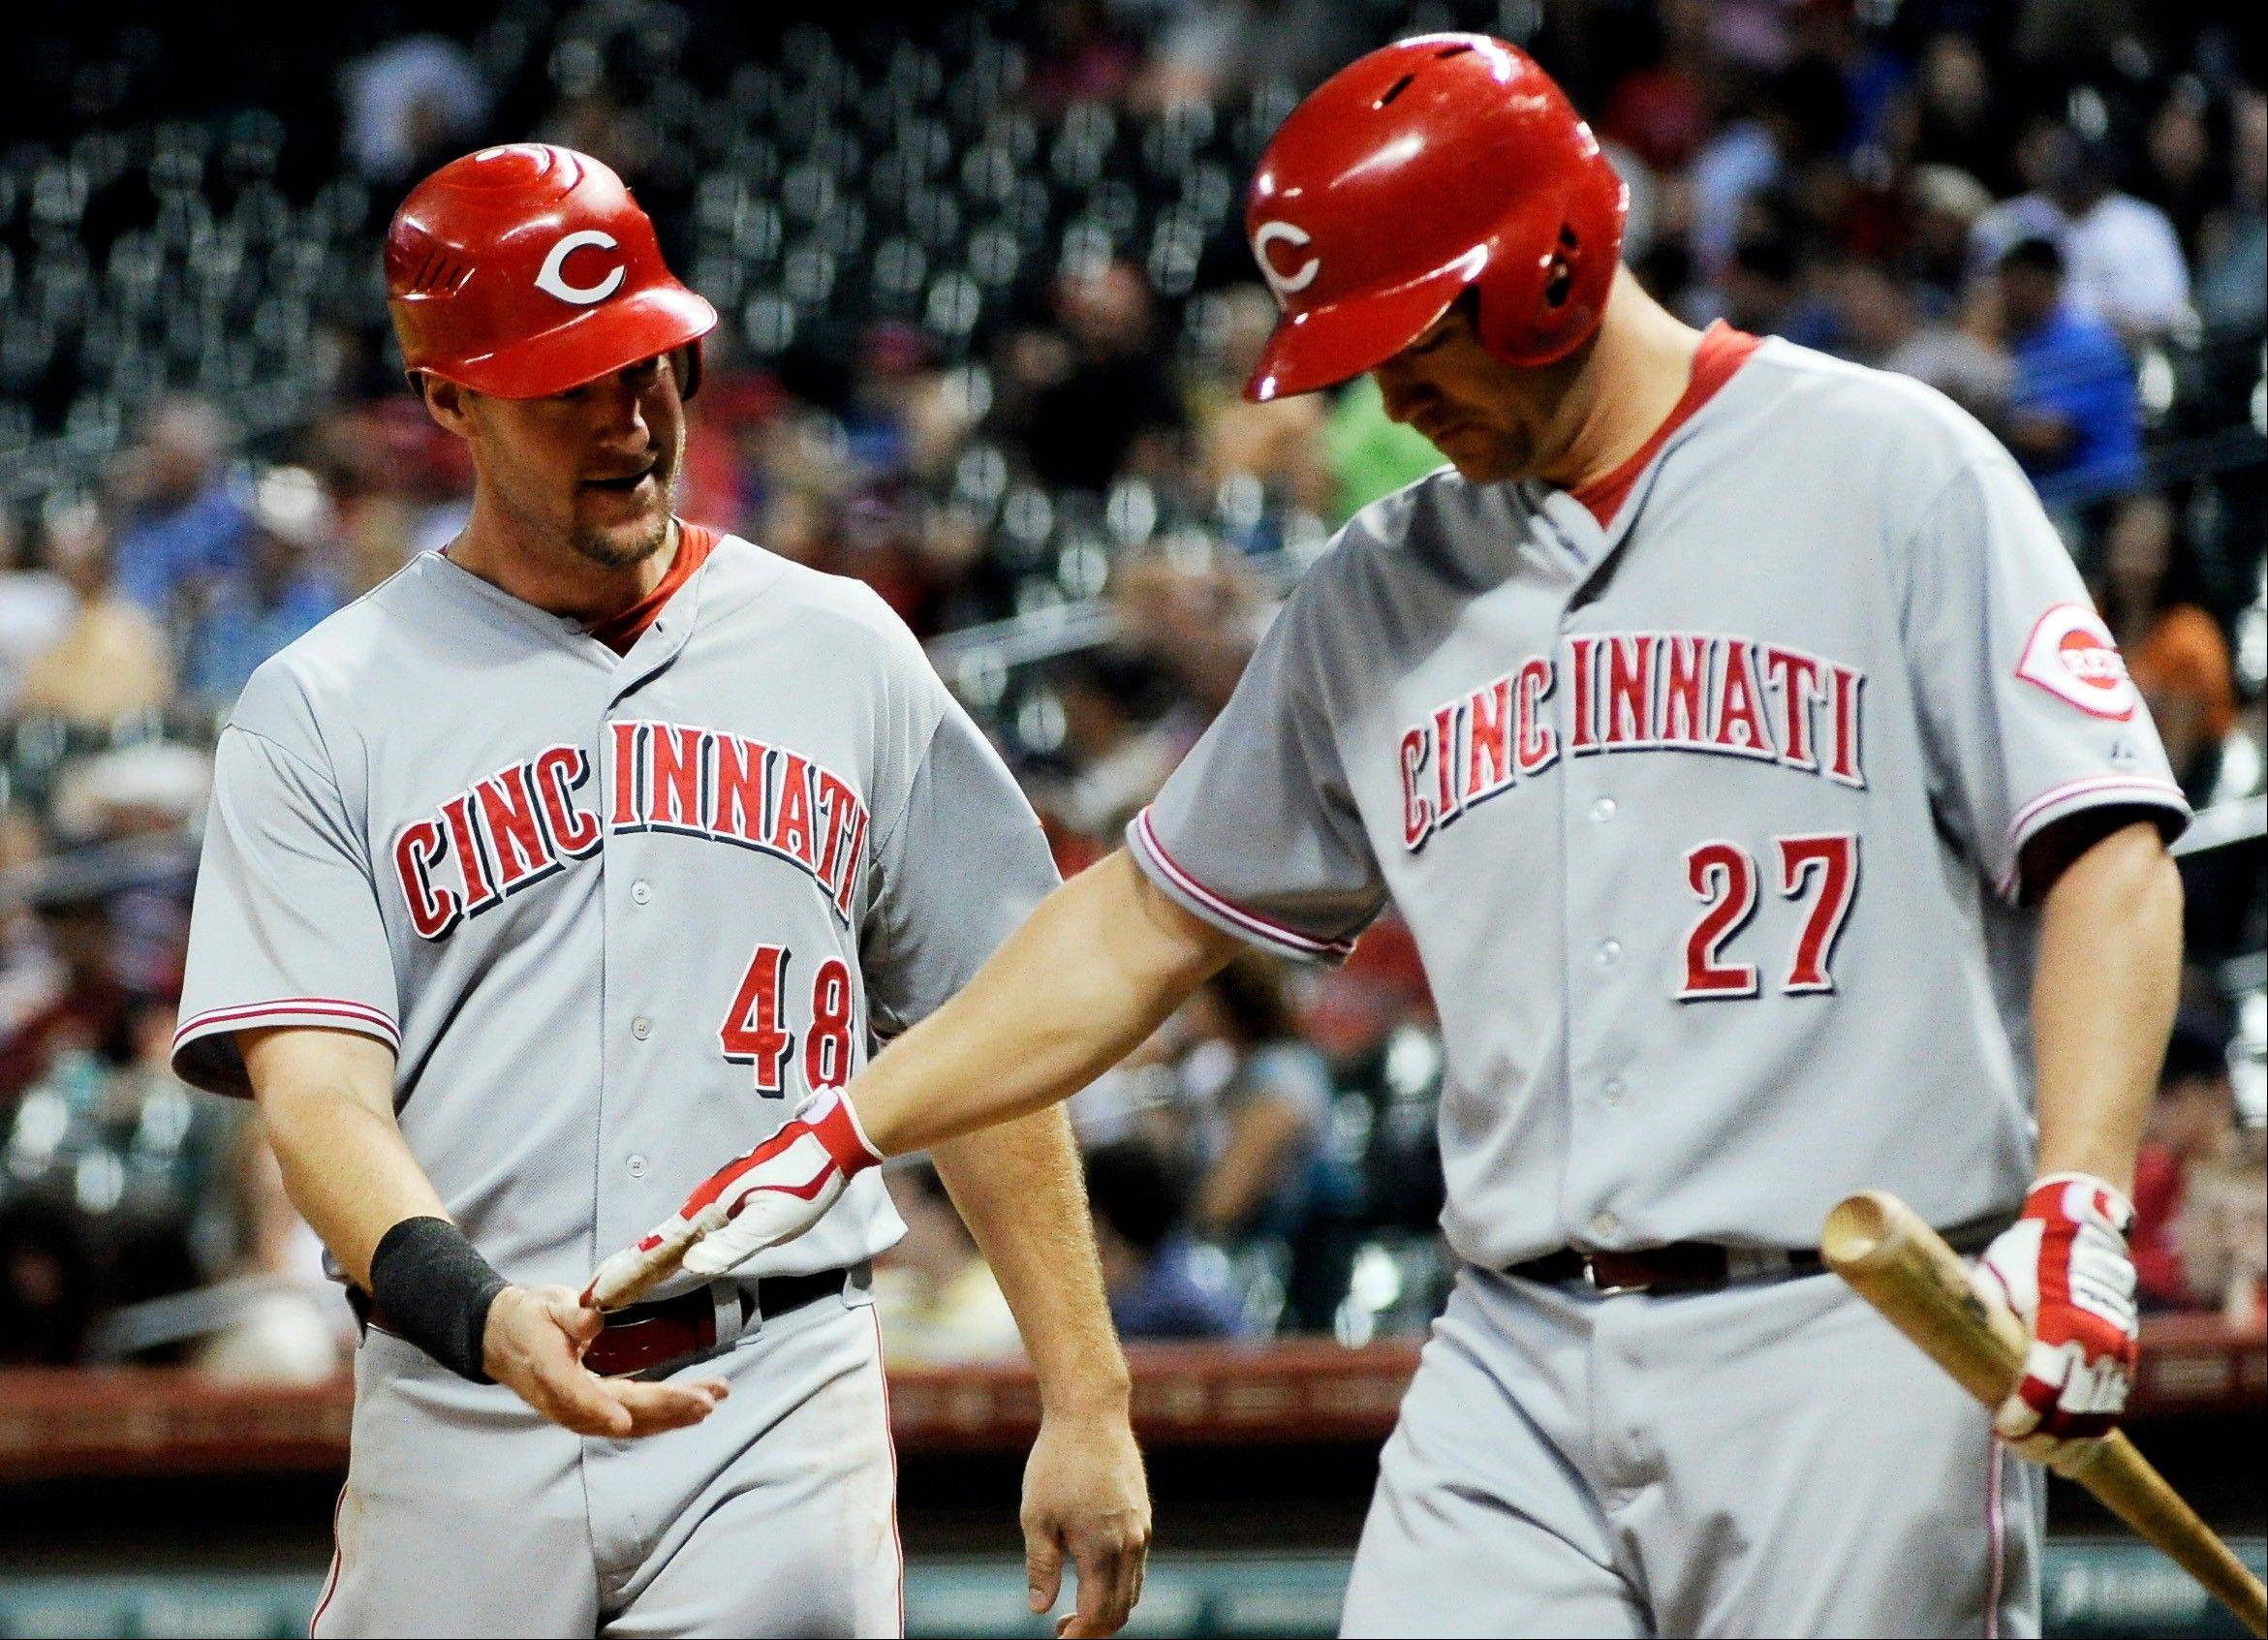 The Reds� Scott Rolen (27) welcomes home Ryan Ludwick after he scored on a double by Todd Frazier in the eighth inning Monday in Houston.